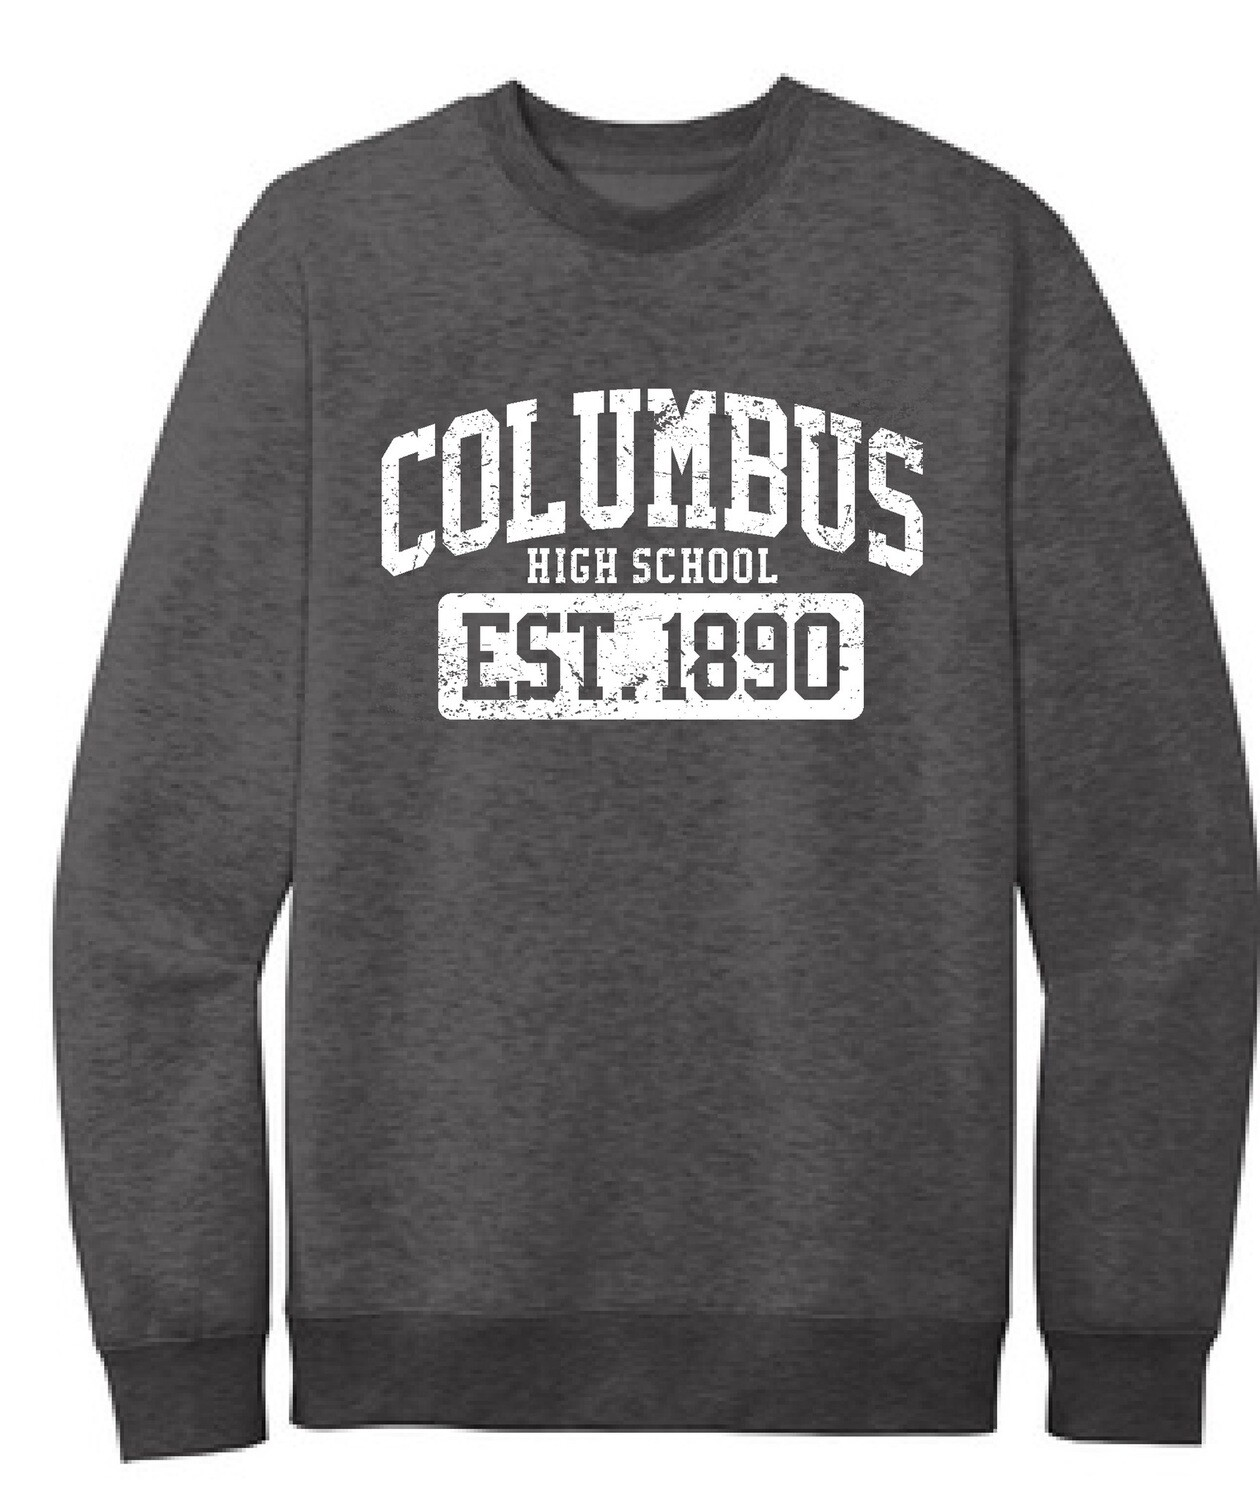 New Design! Fleece Crewneck Sweatshirt with Columbus High EST. 1890 in Charcoal Heather. Preorder Only till Sunday, December 6th. Item will be delivered before the December holiday break.